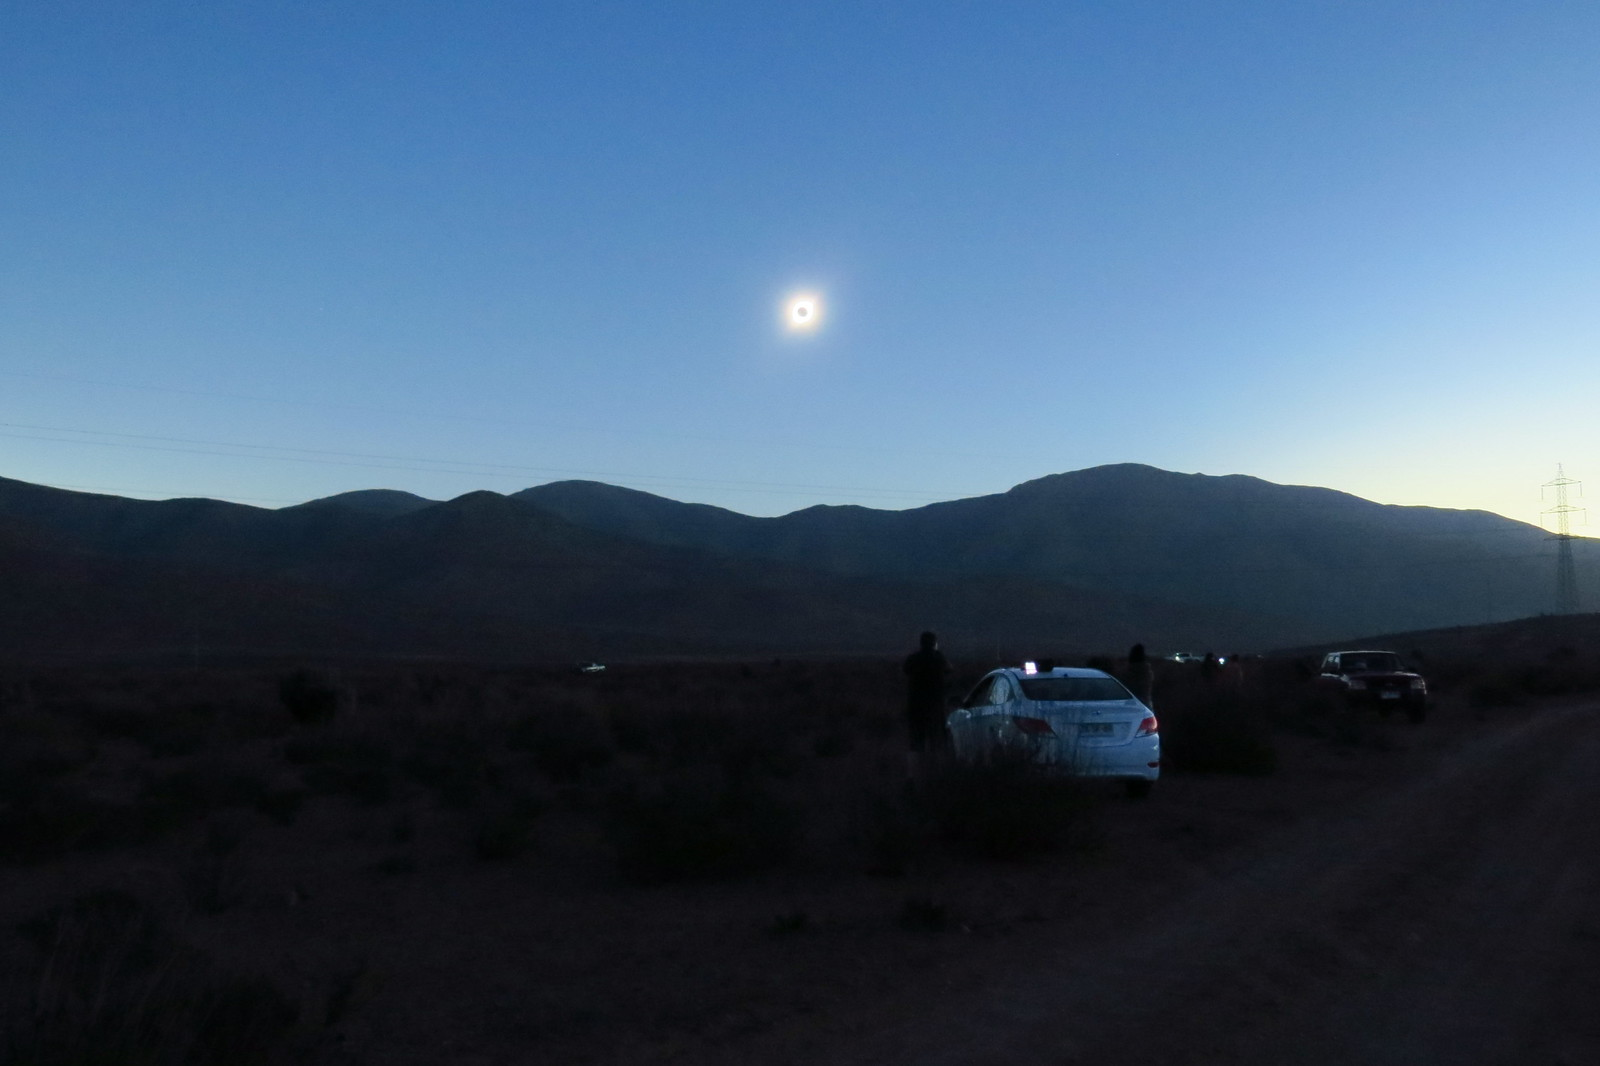 Eclipse in Chile